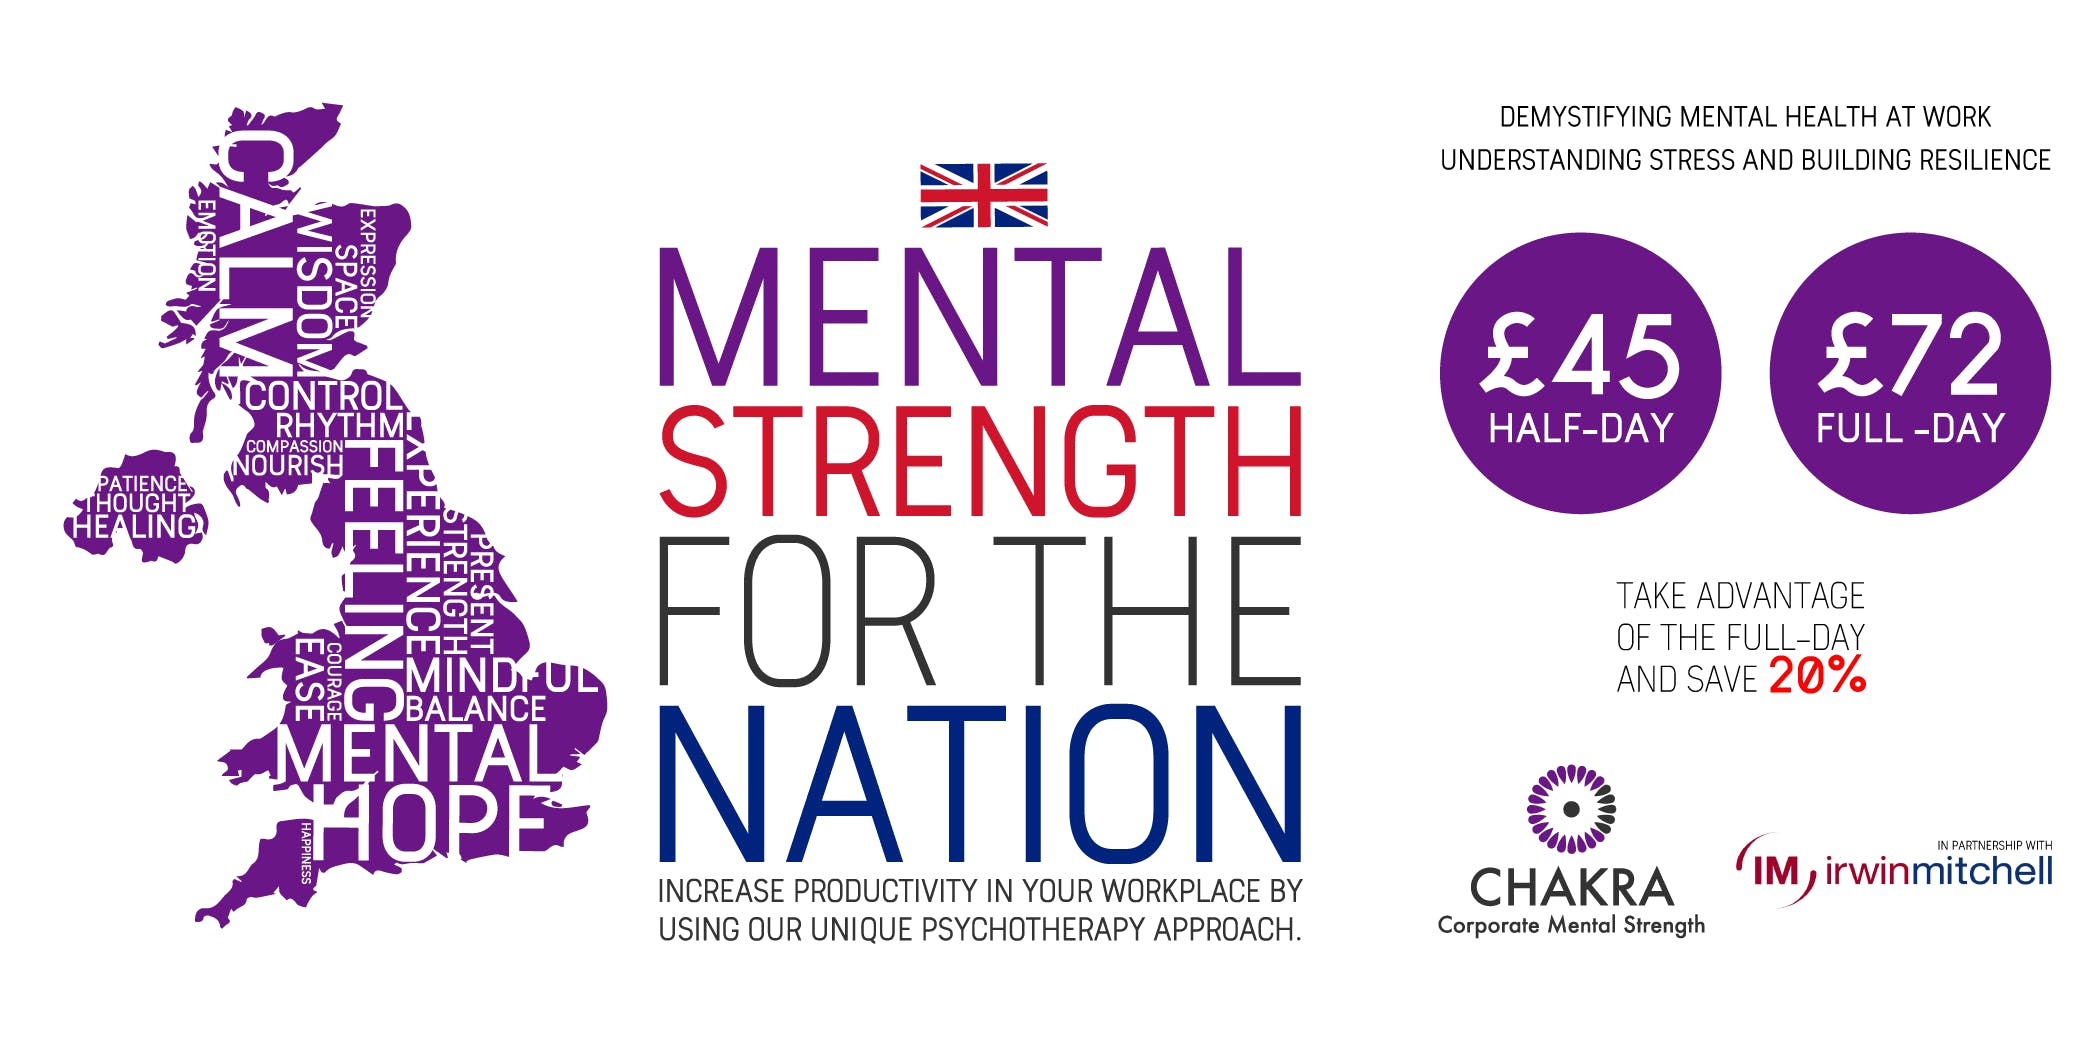 SHEFFIELD: Mental Strength for the Nation